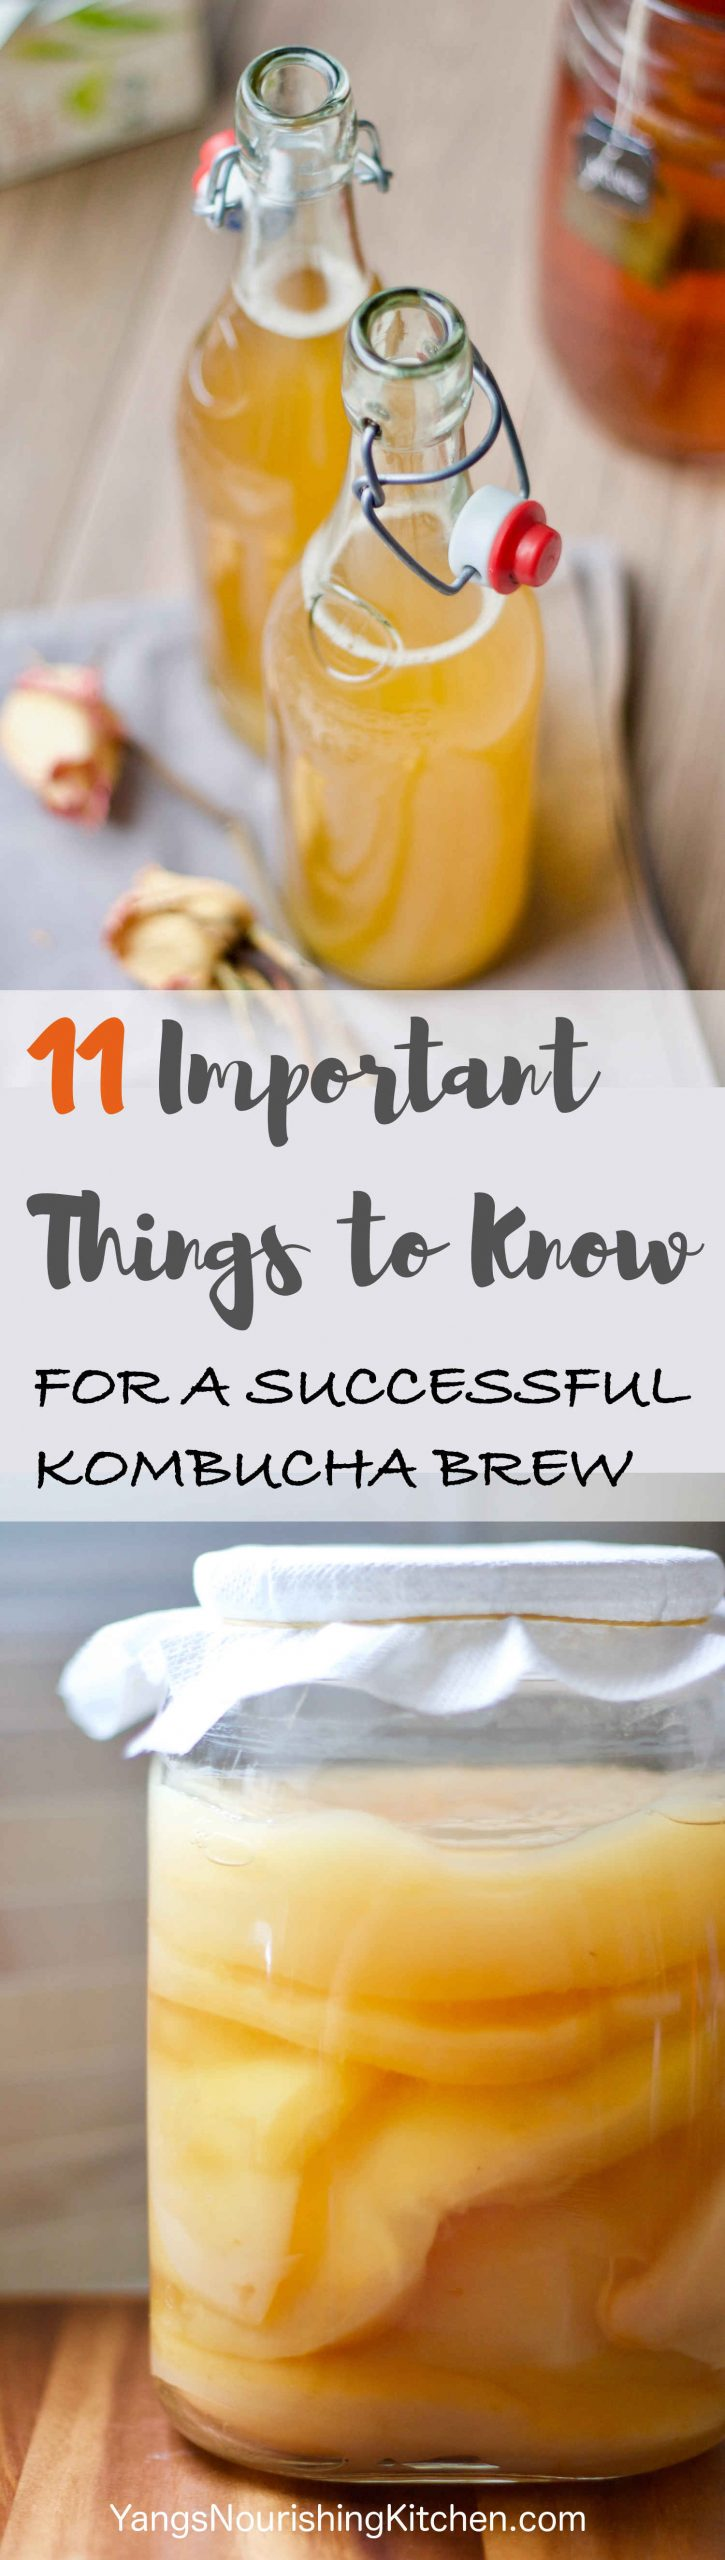 11 Important Things To Know for a Successful Kombucha Brew